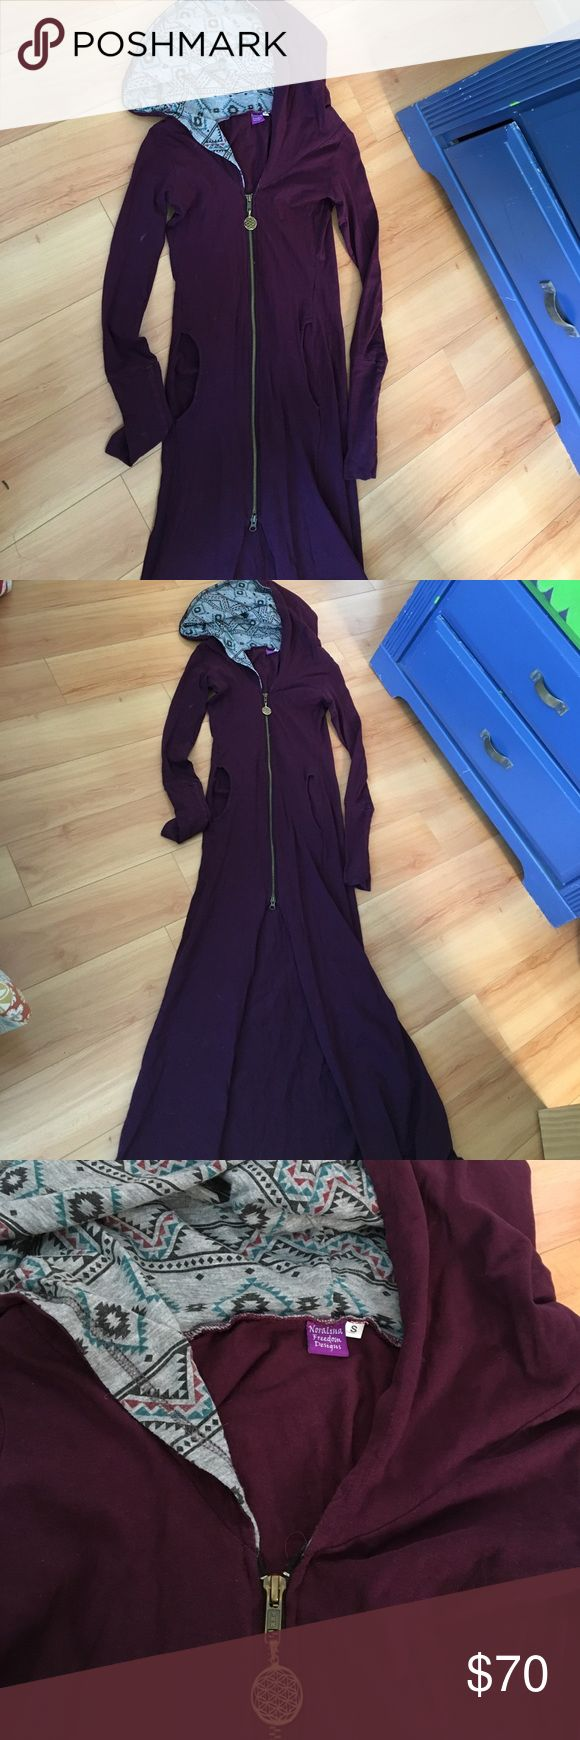 Festival Jacket/dress Long purple jacket/dress. Worn once at a festival. Awesome hooded pattern, flower of life zipper, thumb holes at the wrists. I'm 5'5 and it hits me right above my ankles. Under blackmilk for views. Blackmilk Dresses